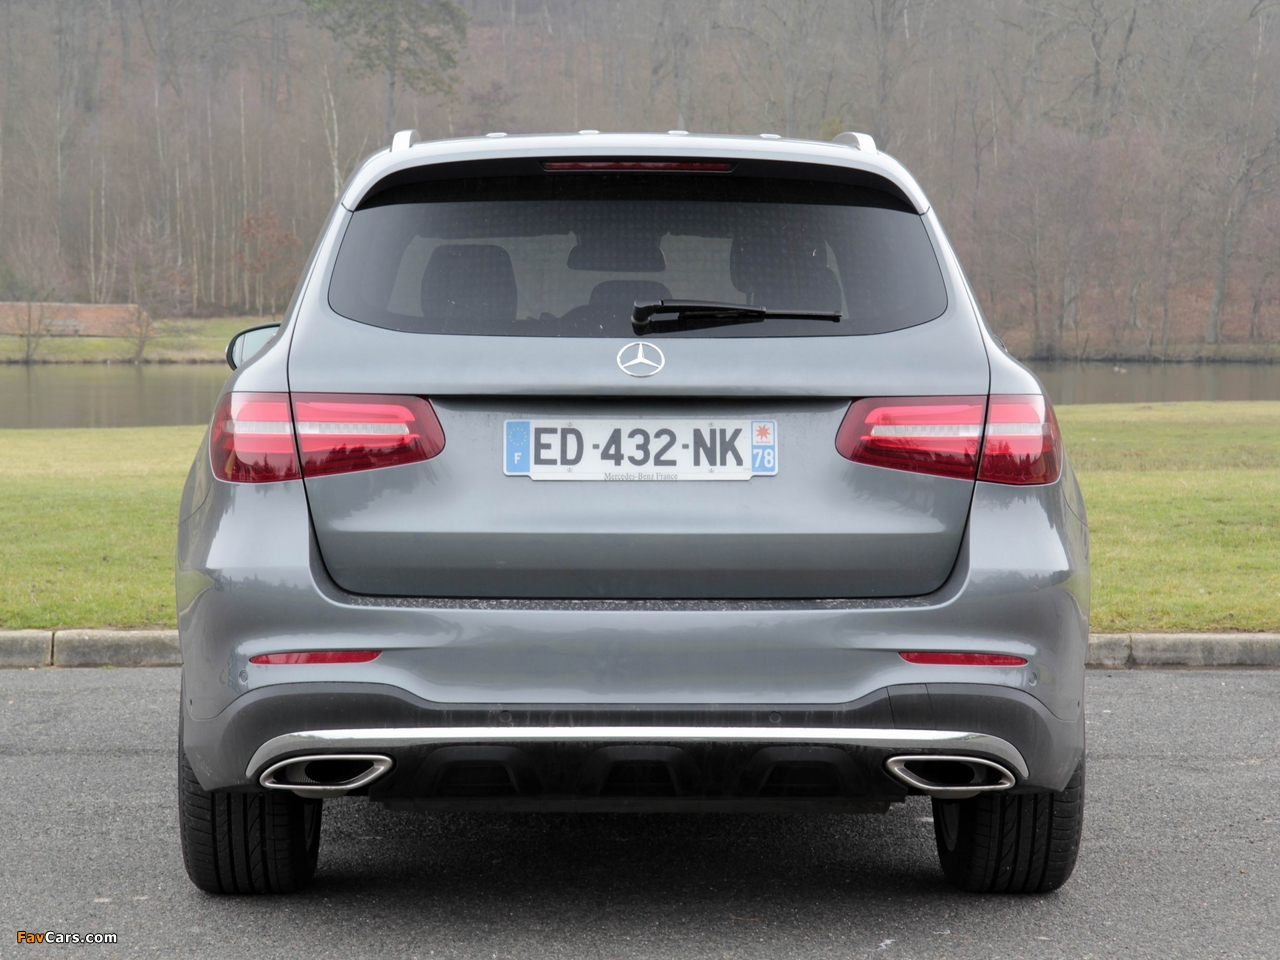 Mercedes-Benz GLC 250 4MATIC AMG Line (X253) 2015 pictures (1280 x 960)